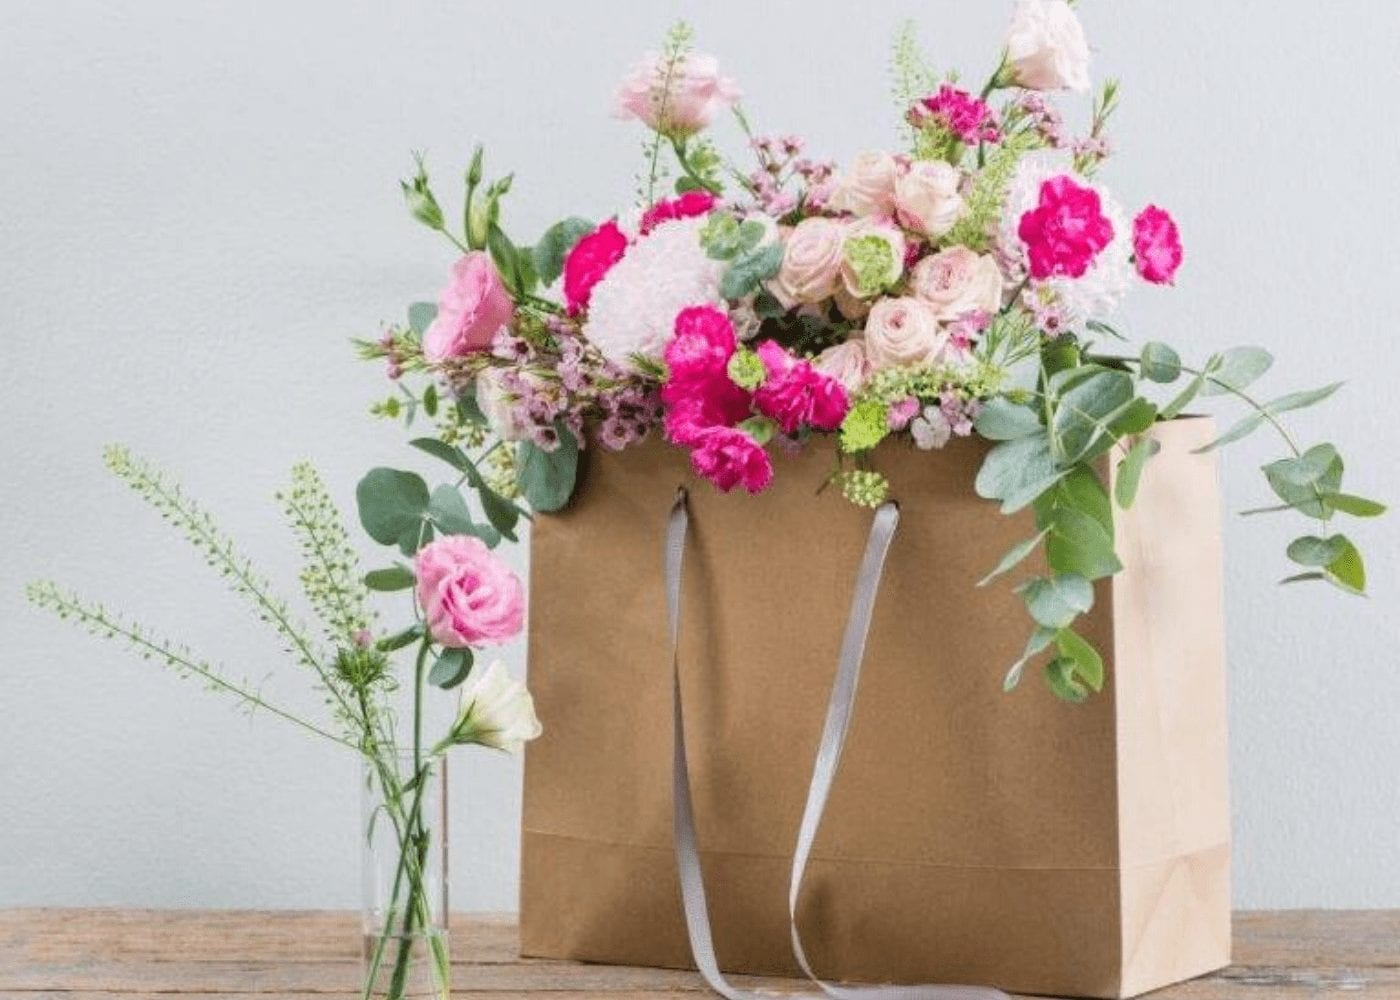 flowers in a bag